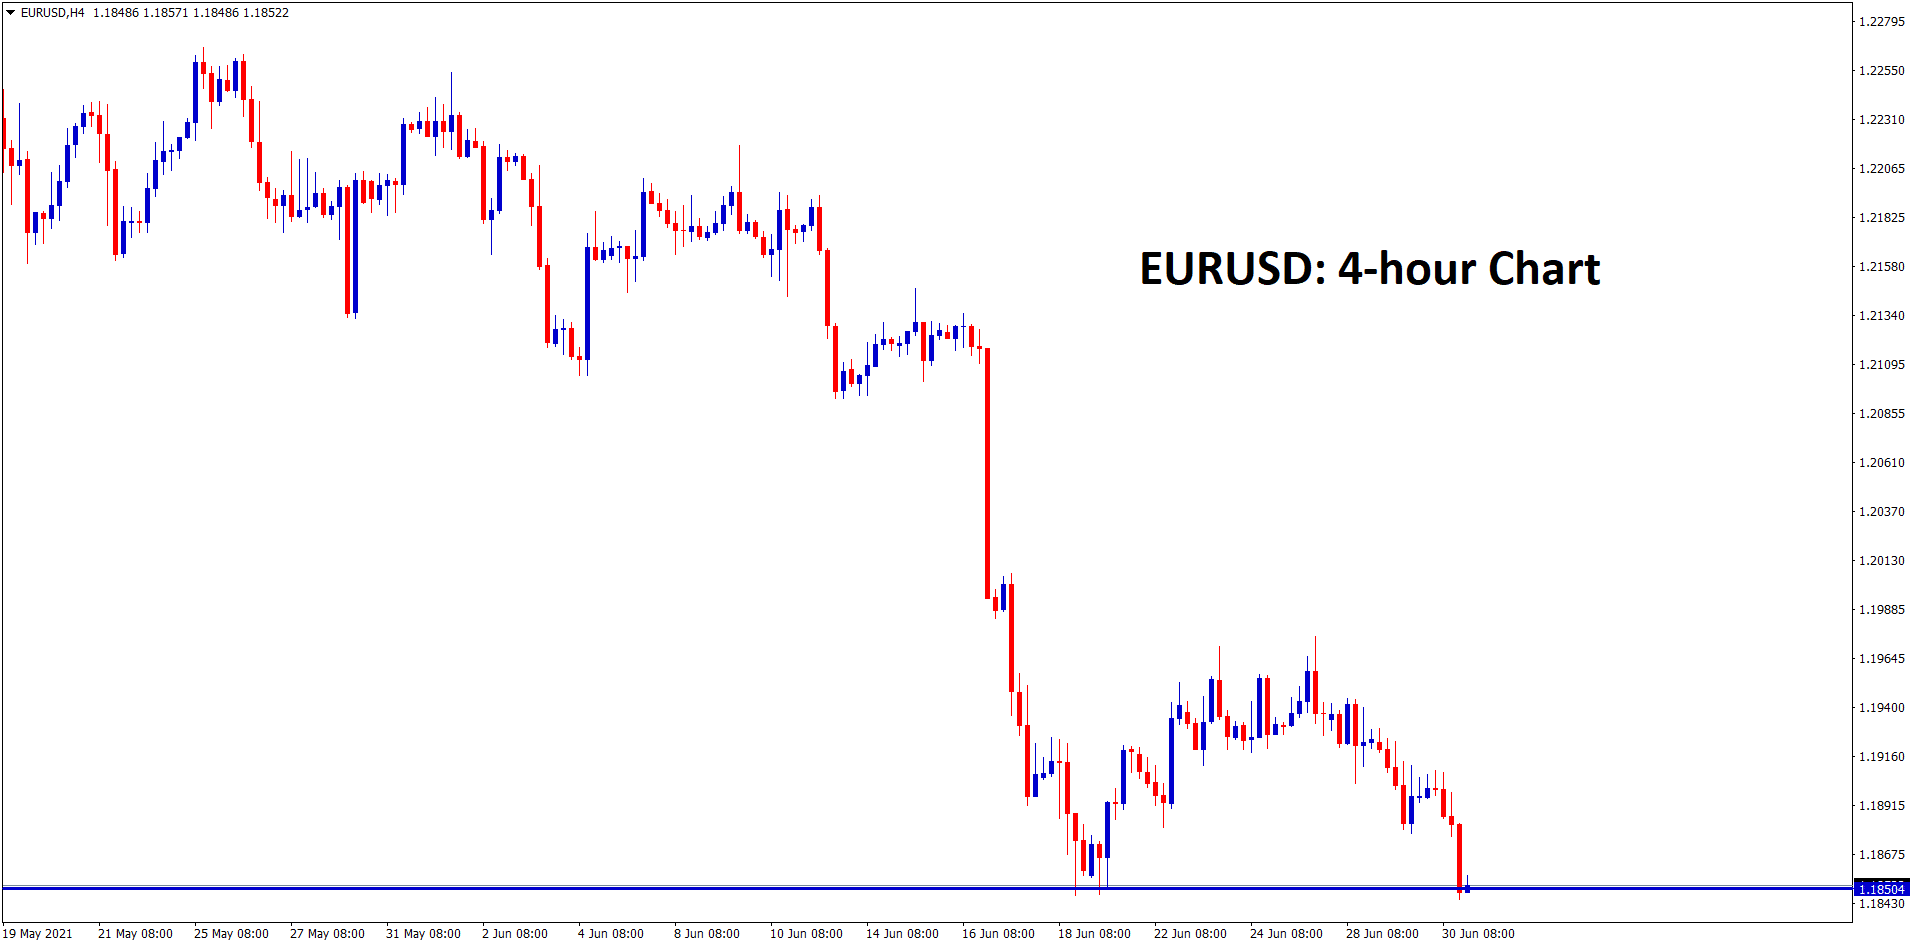 EURUSD is standing exactly at the support zone